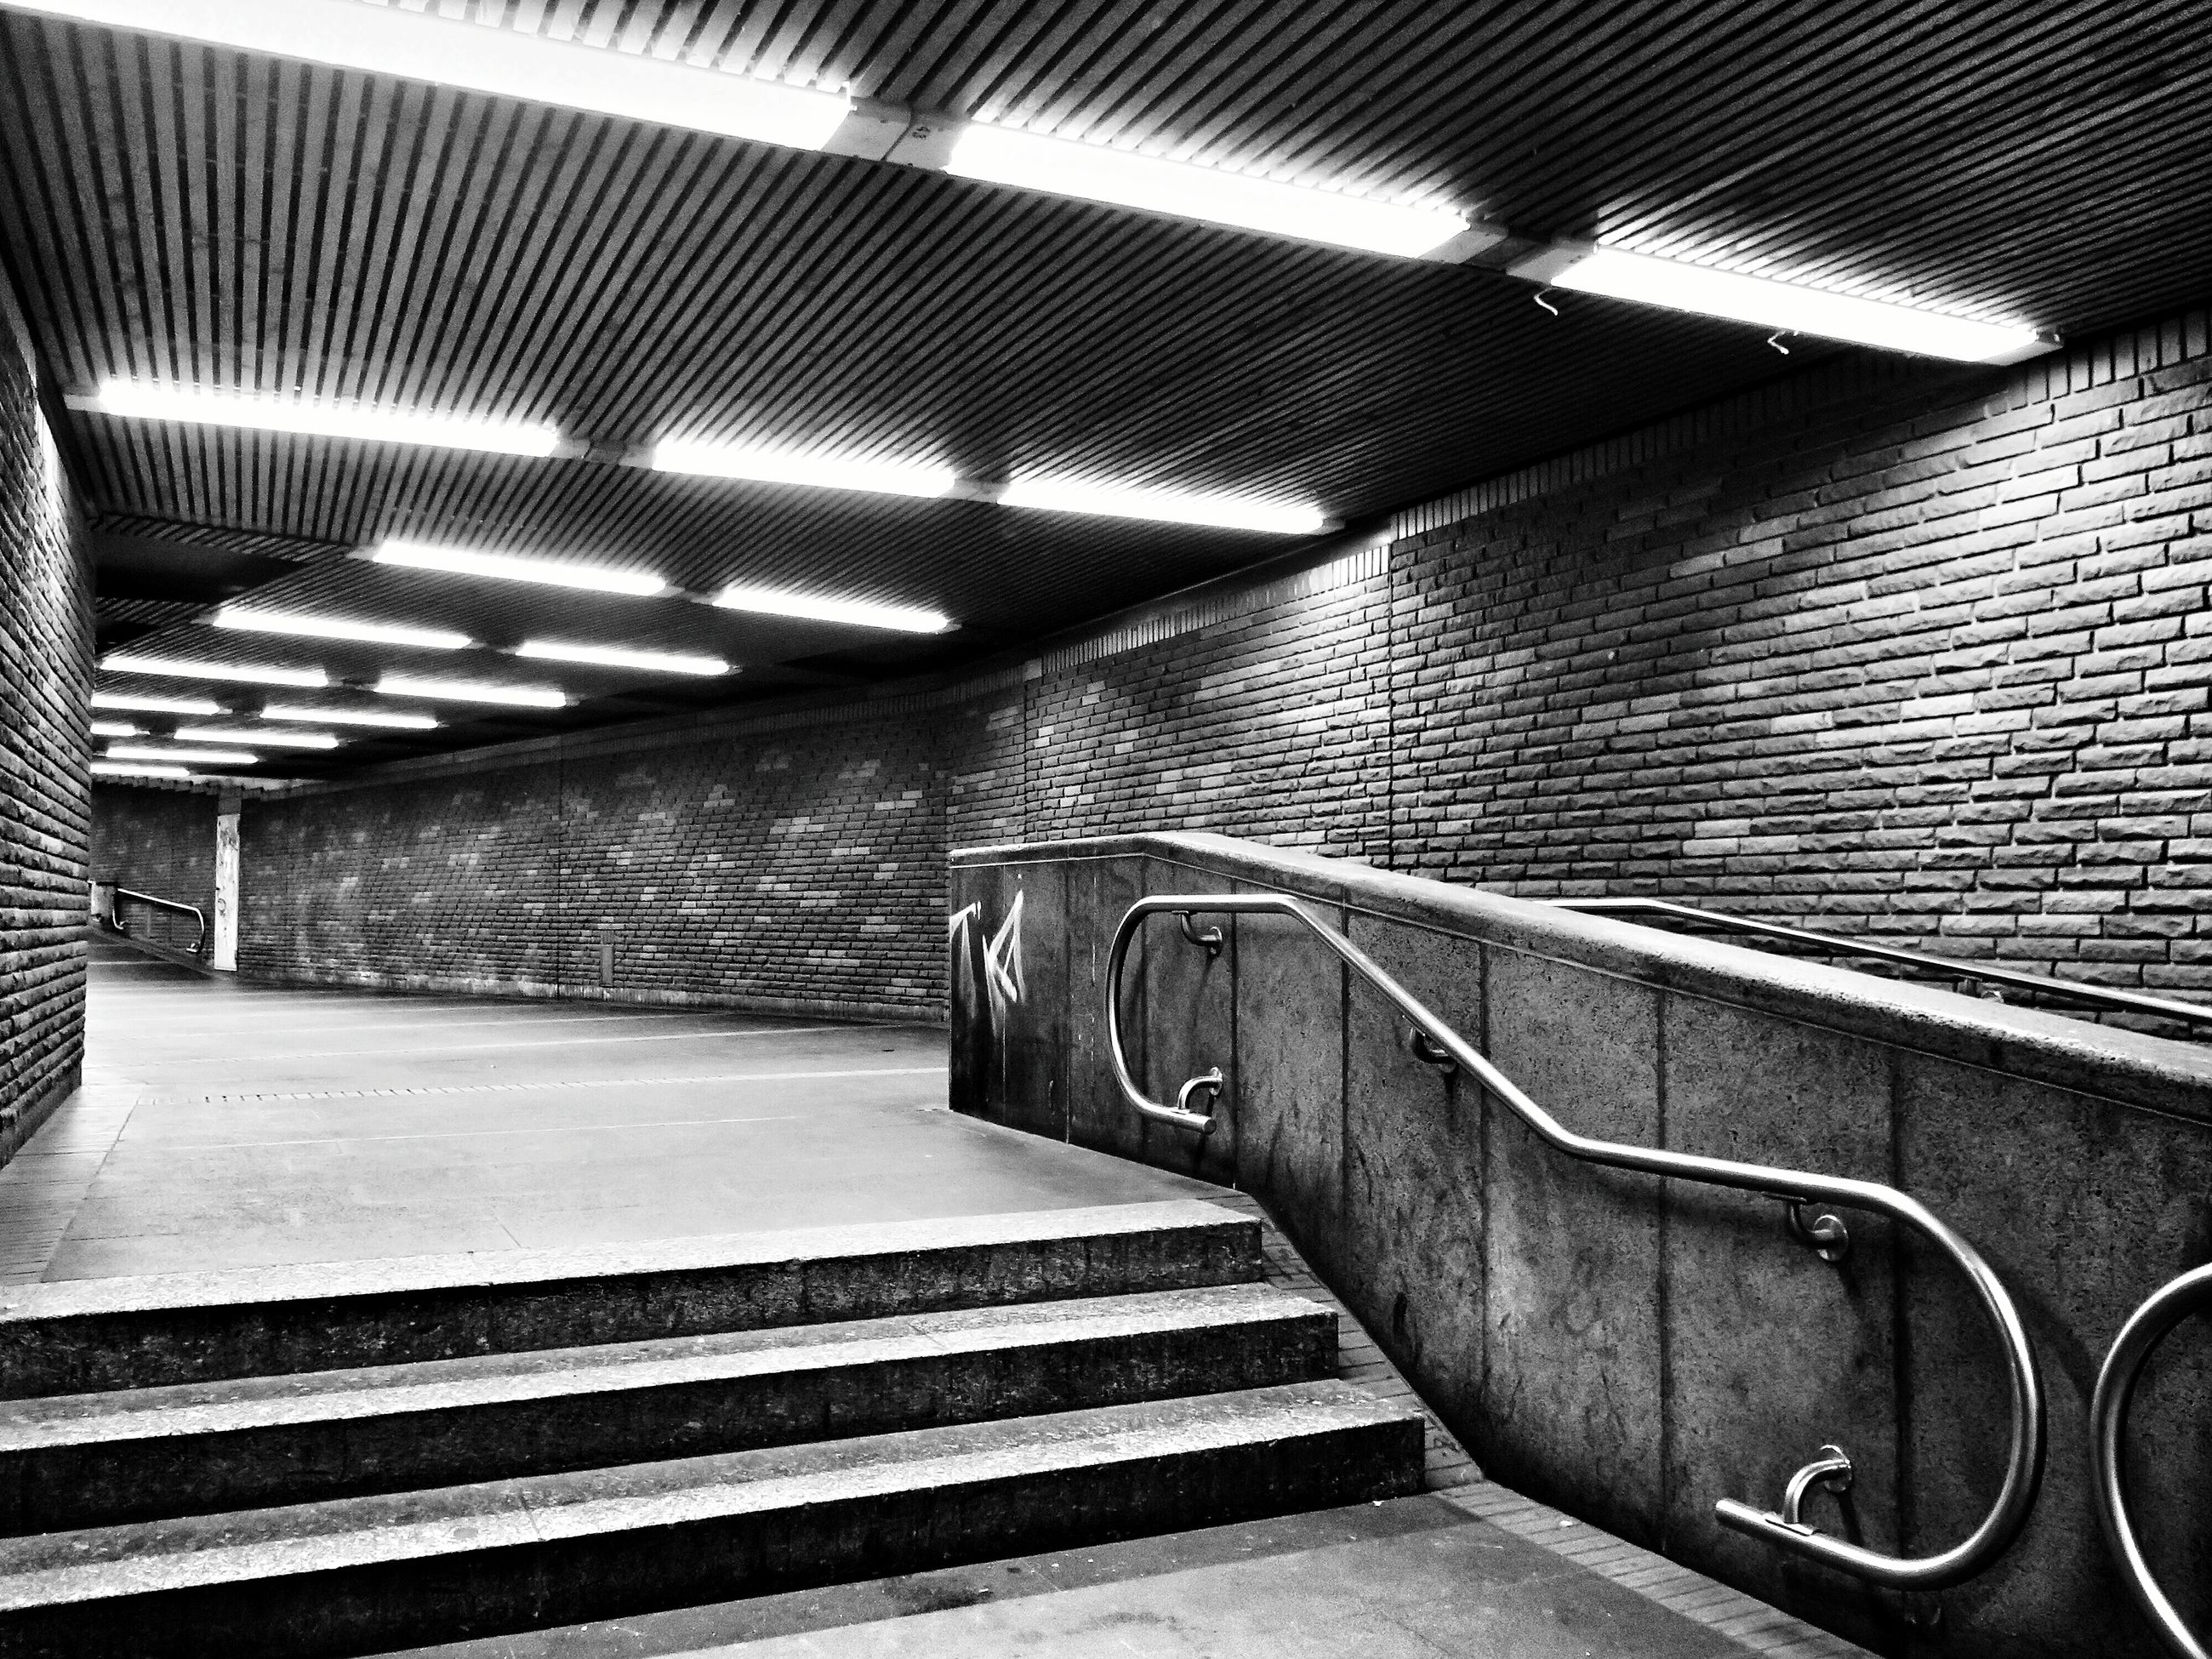 indoors, steps and staircases, steps, the way forward, staircase, railing, empty, absence, high angle view, transportation, diminishing perspective, architecture, built structure, wall - building feature, vanishing point, illuminated, tunnel, escalator, no people, ceiling